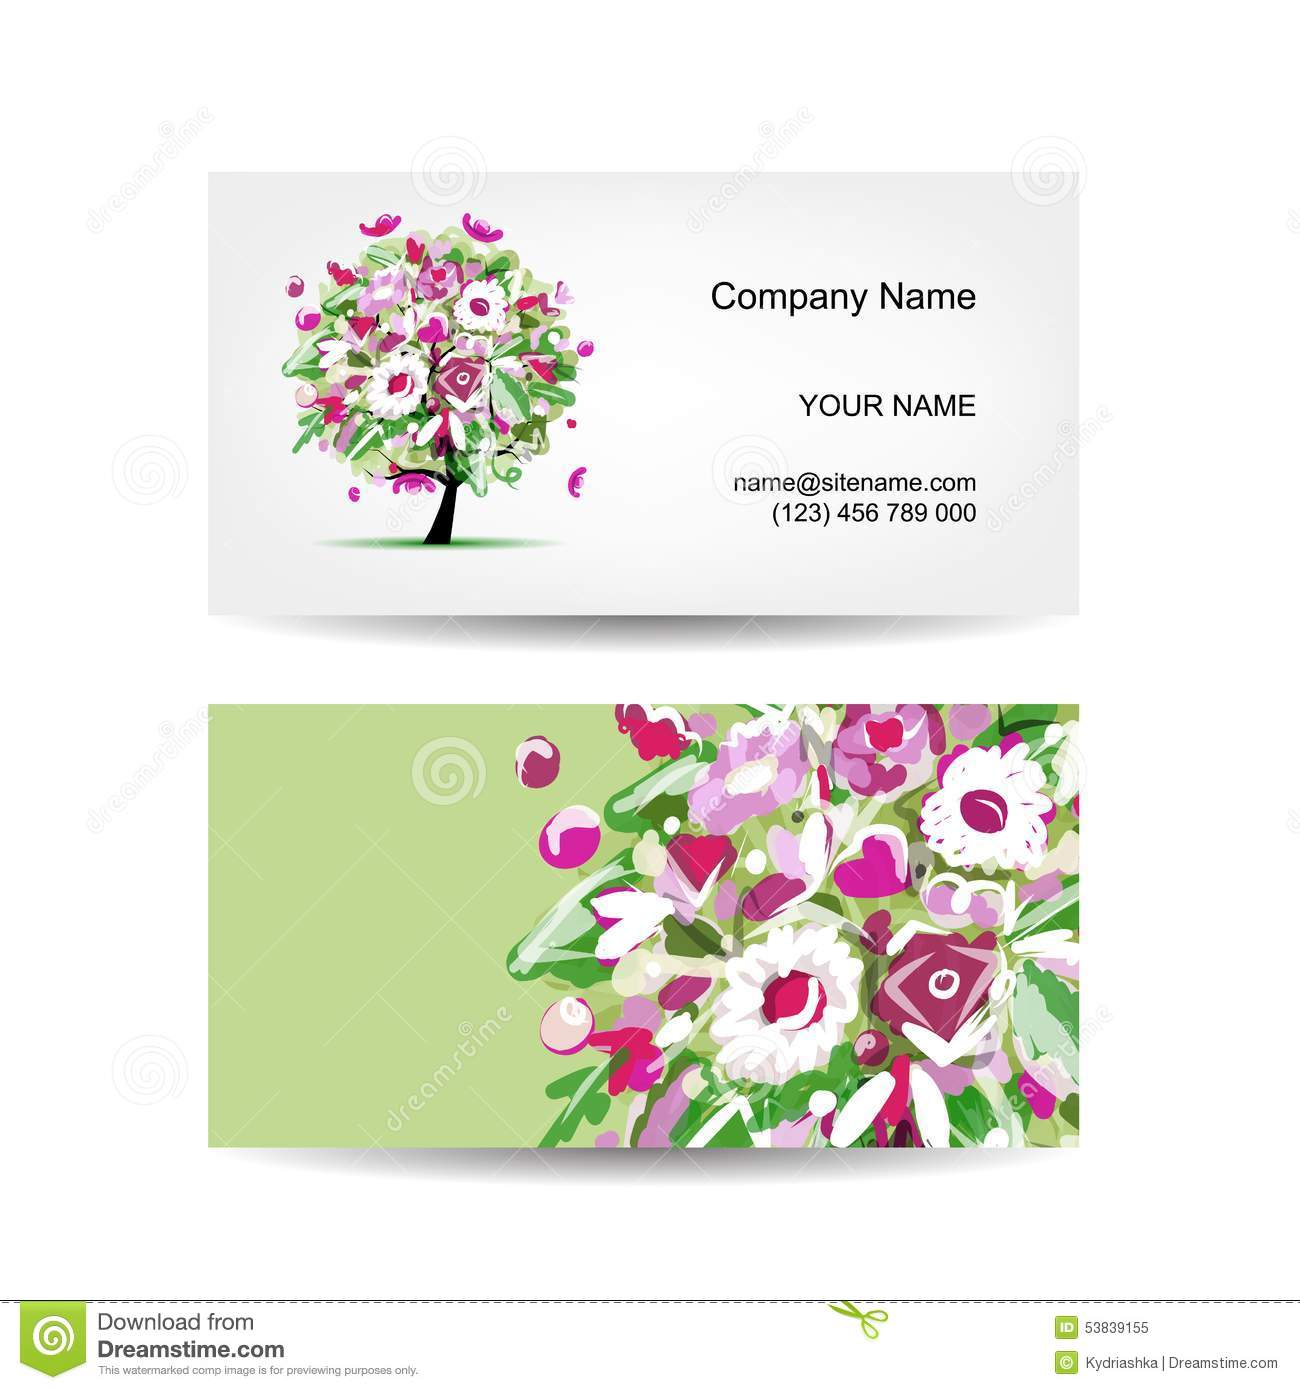 Business card template design floral tree stock vector image business card template design floral tree magicingreecefo Choice Image